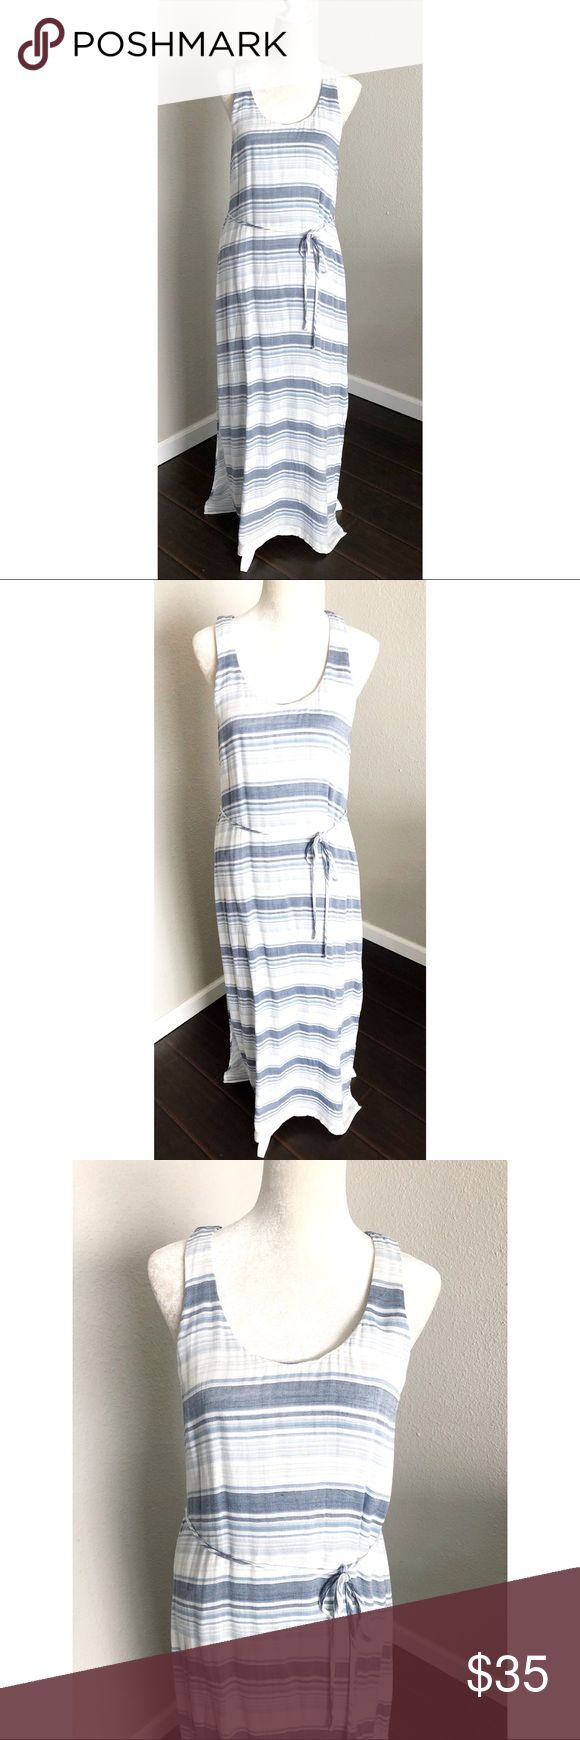 "Cloth & Stone Sleeveless Stripe Maxi Dress Size M Beautiful Anthropologie Cloth & Stone Striped Maxi Dress. This dress is so soft. It has two side slits and is in a size medium. It's blue and white. The measurements are: Bust 39"",  Waist: 38"", Hips: 40"", Top to bottom: 56"". Please contact me with any questions. Anthropologie Dresses Maxi"